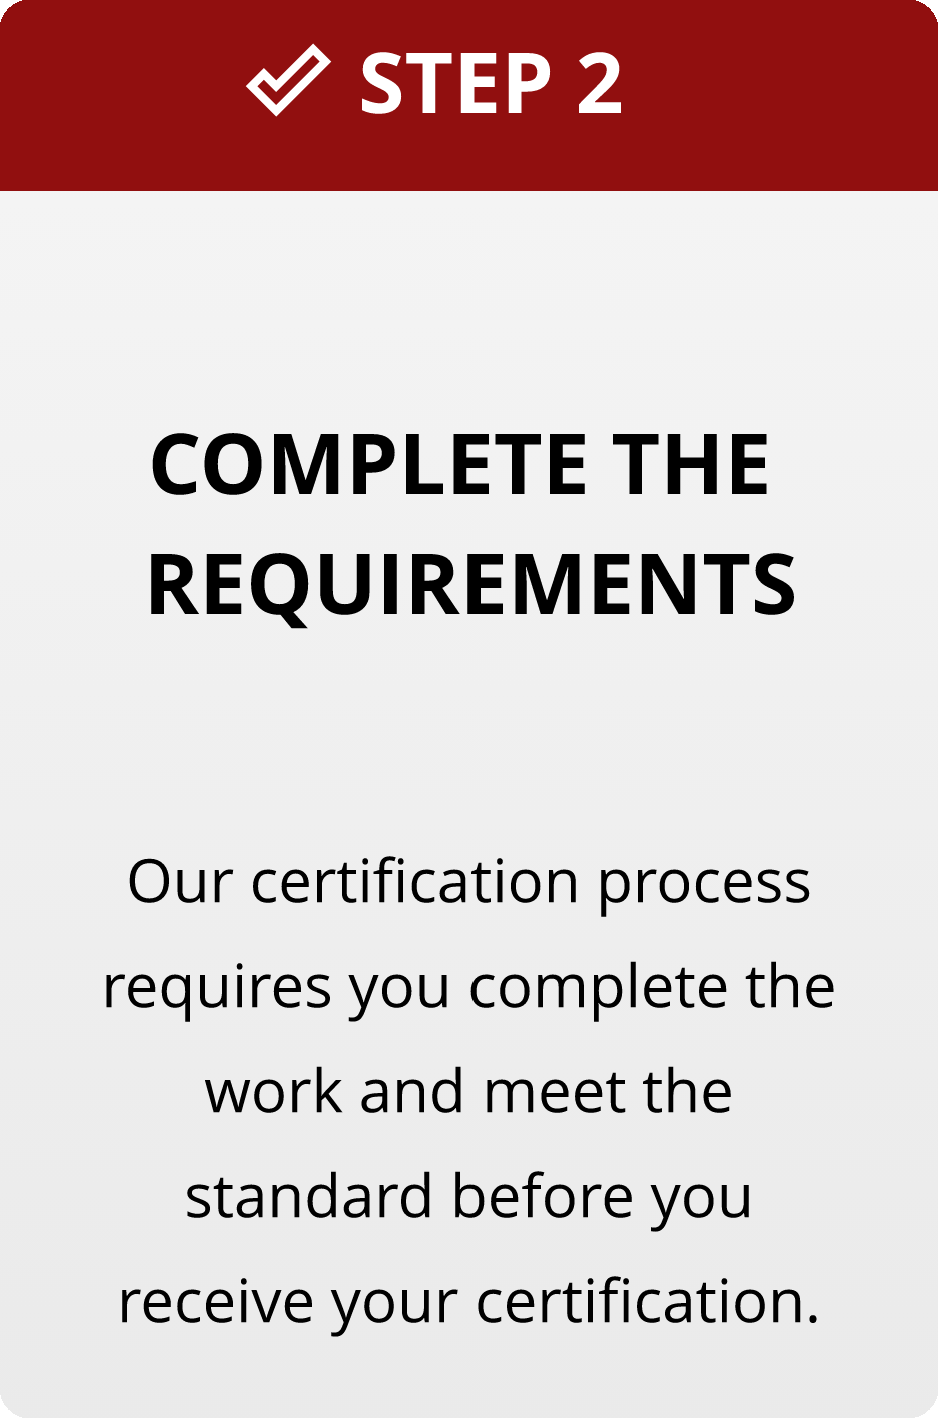 Step 2: Complete the requirements. Our certification process requires you complete the work and meet the standard before you receive your certification.